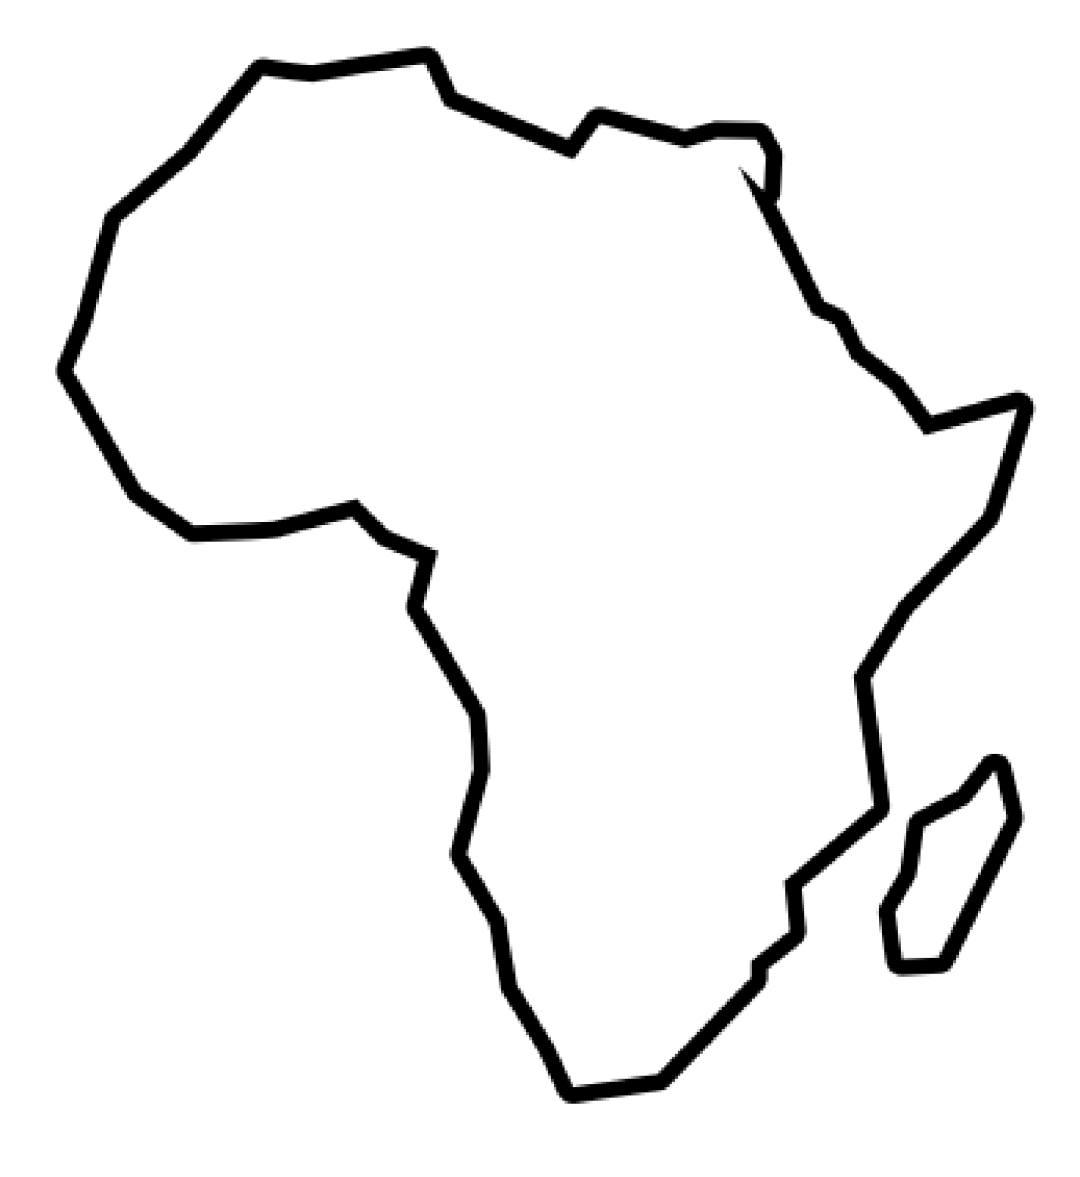 Outline of the Continent of Africa